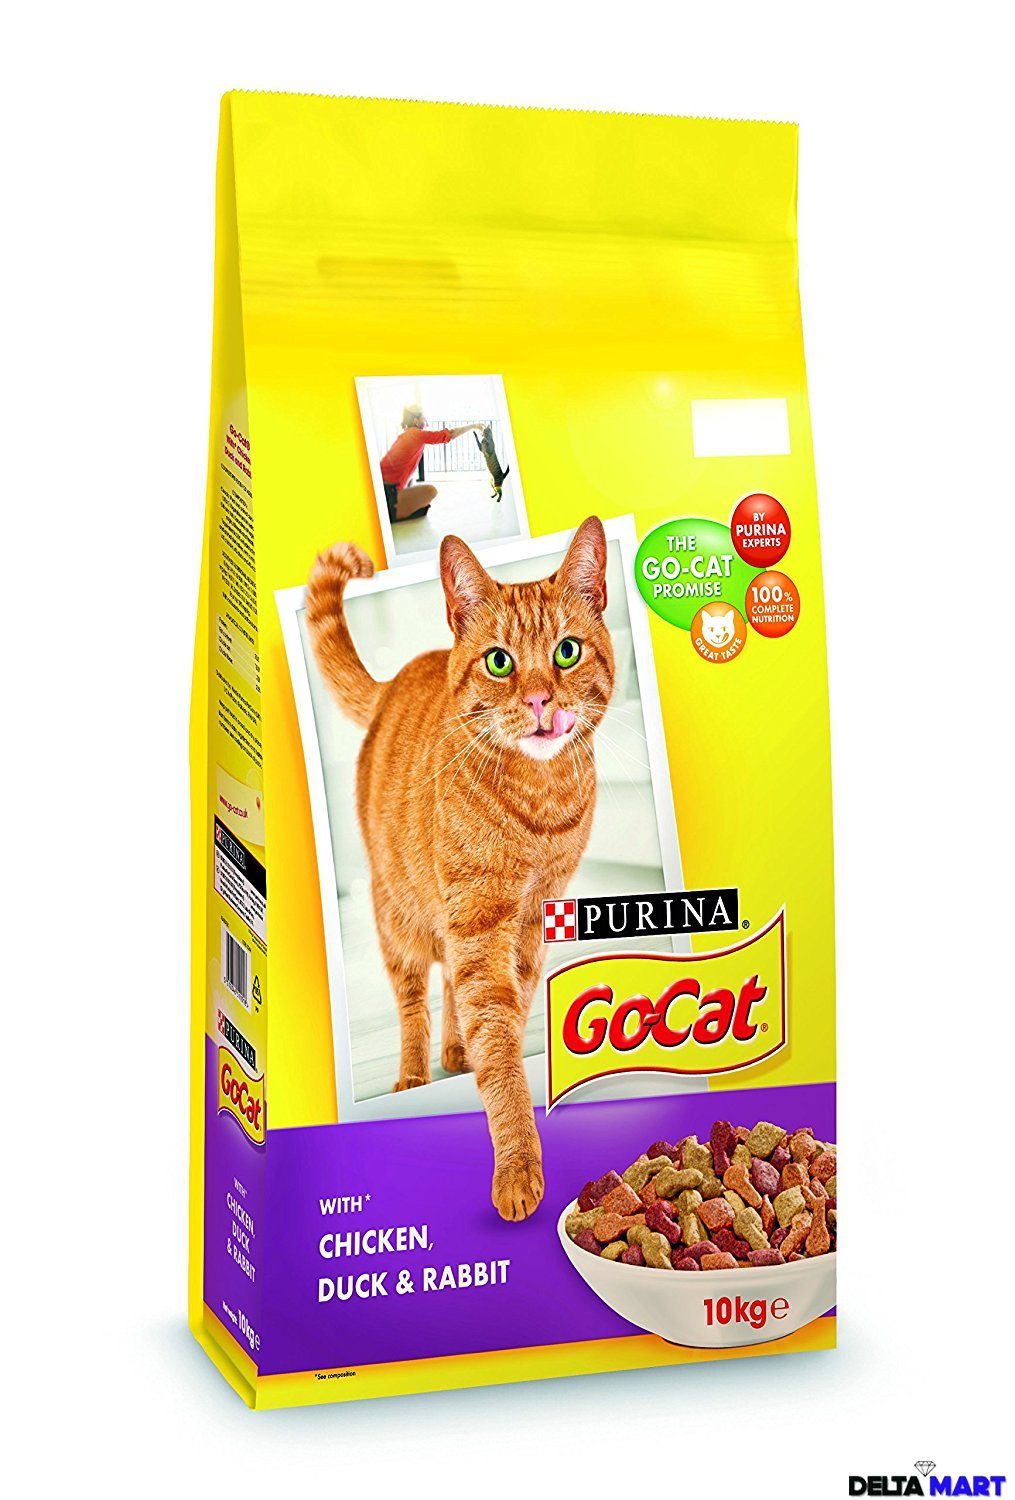 Purina Go Cat Chicken Duck